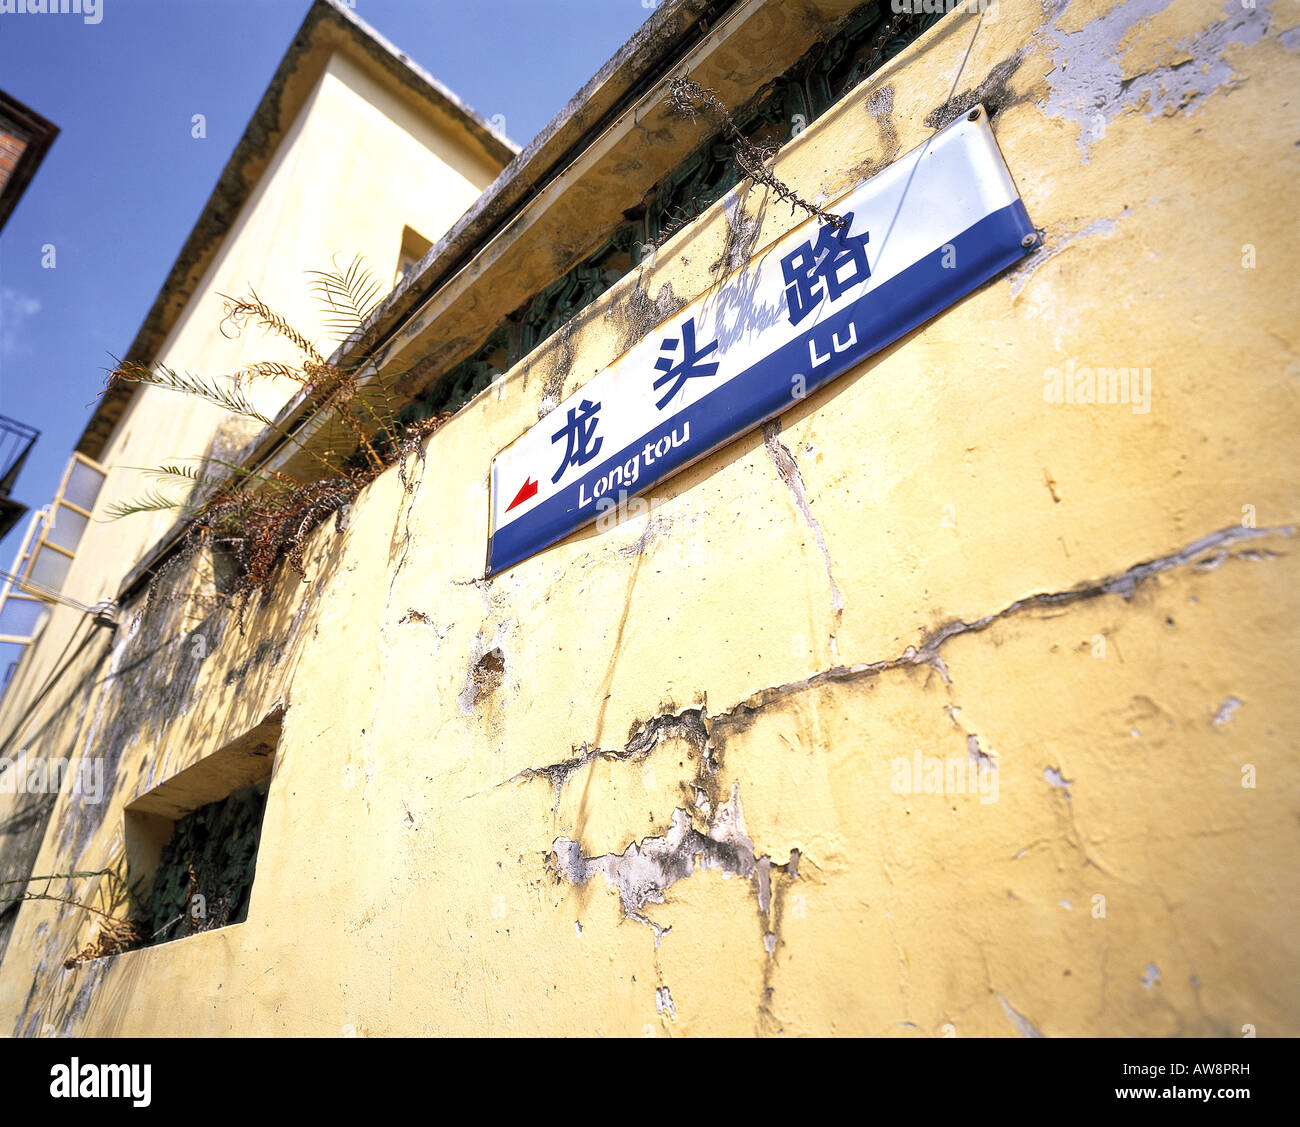 Street sign on an old, cracked wall on Gulangyu Island (formerly Amoy), China. - Stock Image